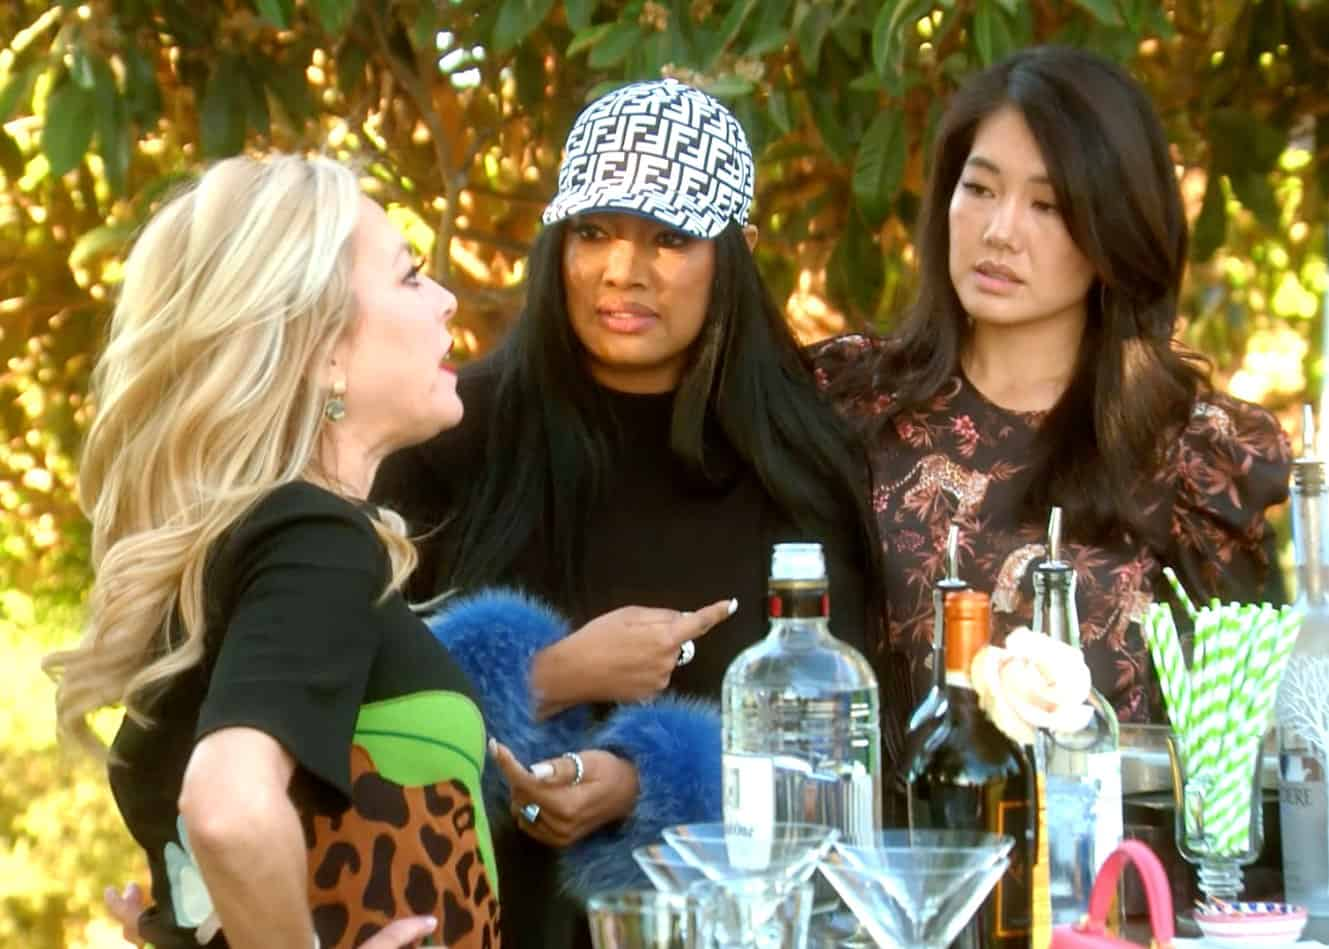 RHOBH Recap: A Bolognese Luncheon Leaves the Ladies in Shock as Sutton Storms Out in Anger